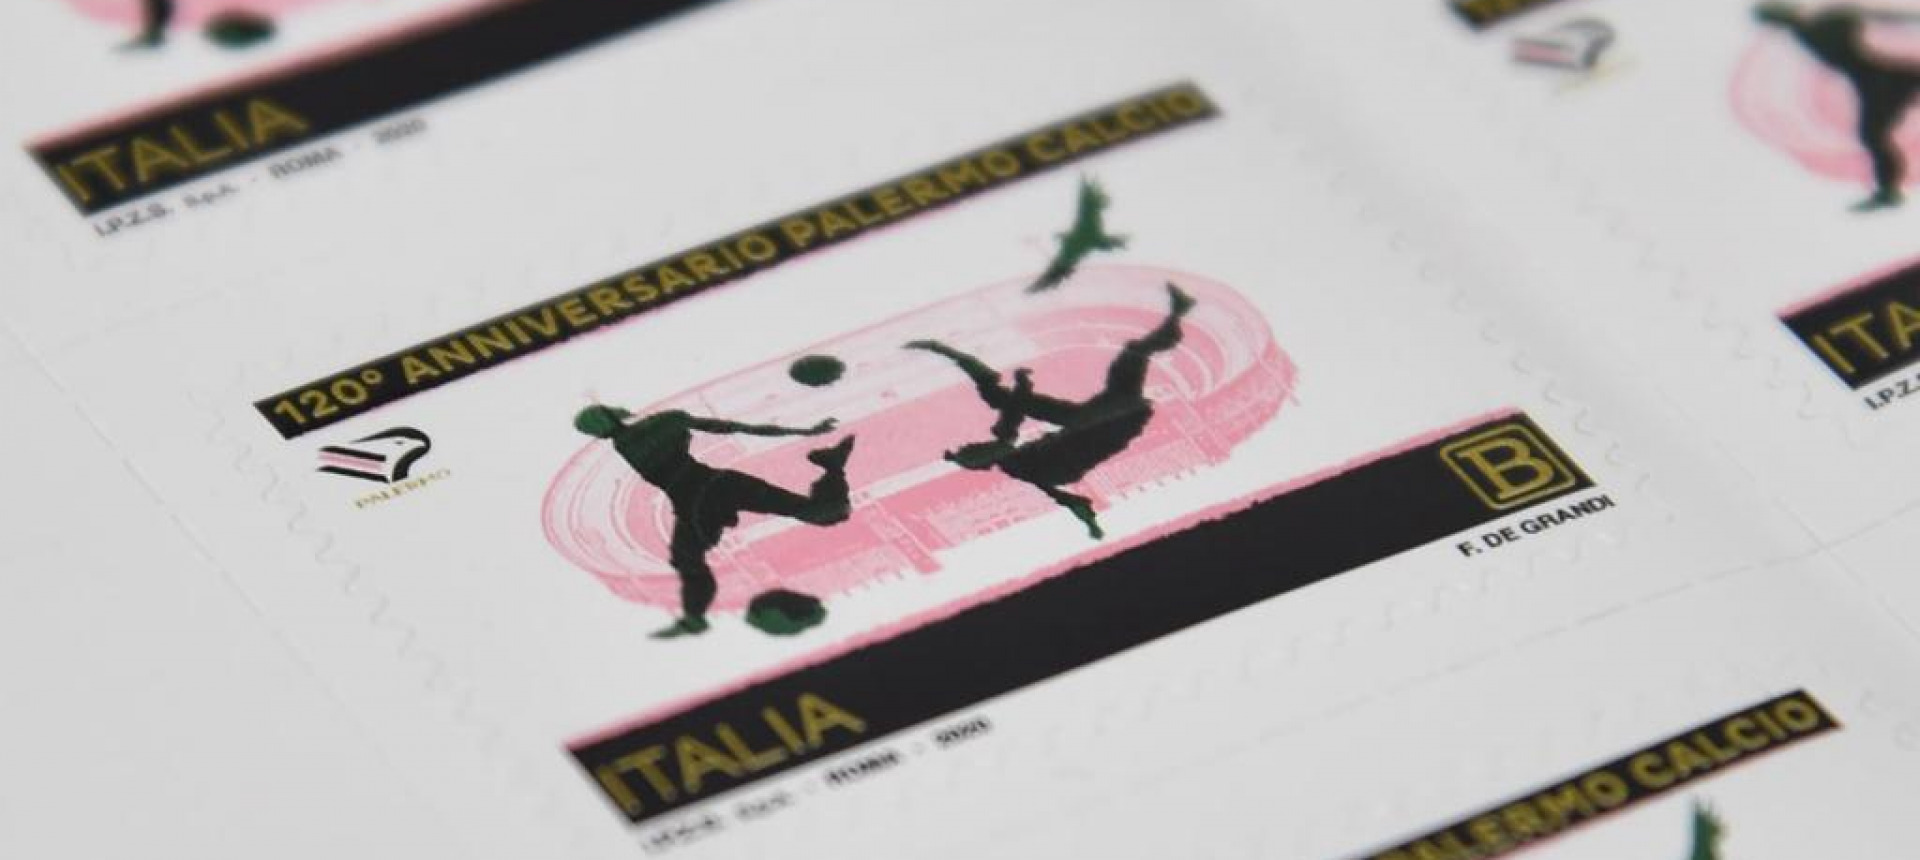 120 YEARS OF PALERMO F.C.: STAMP EMITTED FOR THE ANNIVERSARY OF THE FOUNDATION